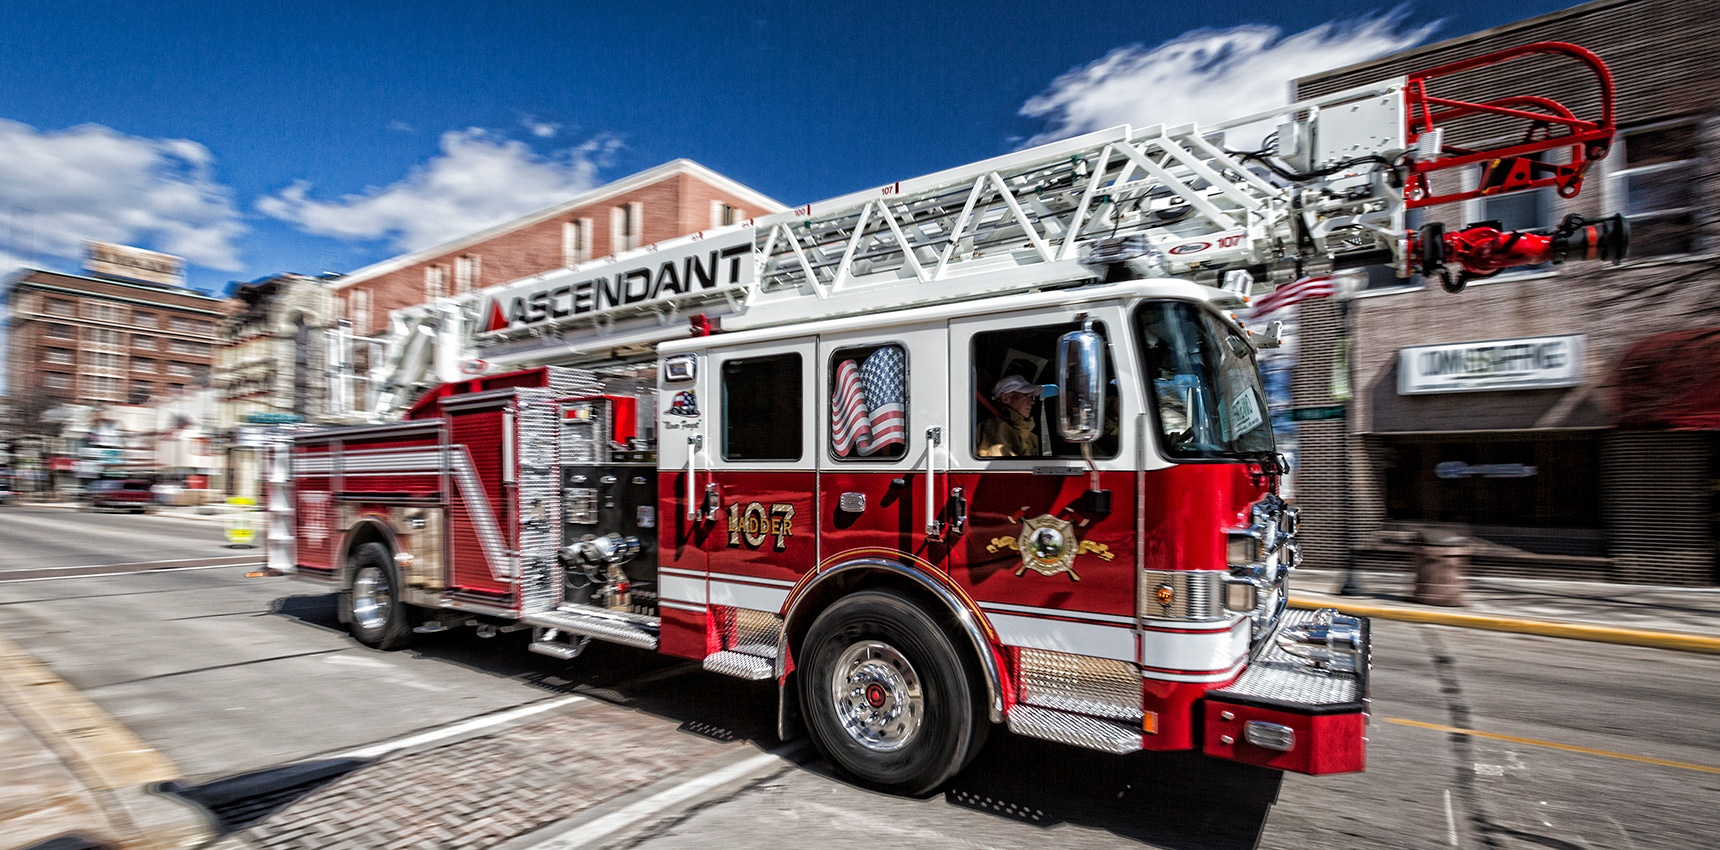 Pierce-Ascendant-Achieves-New-Milestone-Sale-No107-for-the-Innovative-107-Foot-Aerial-Ladder_Header.jpg